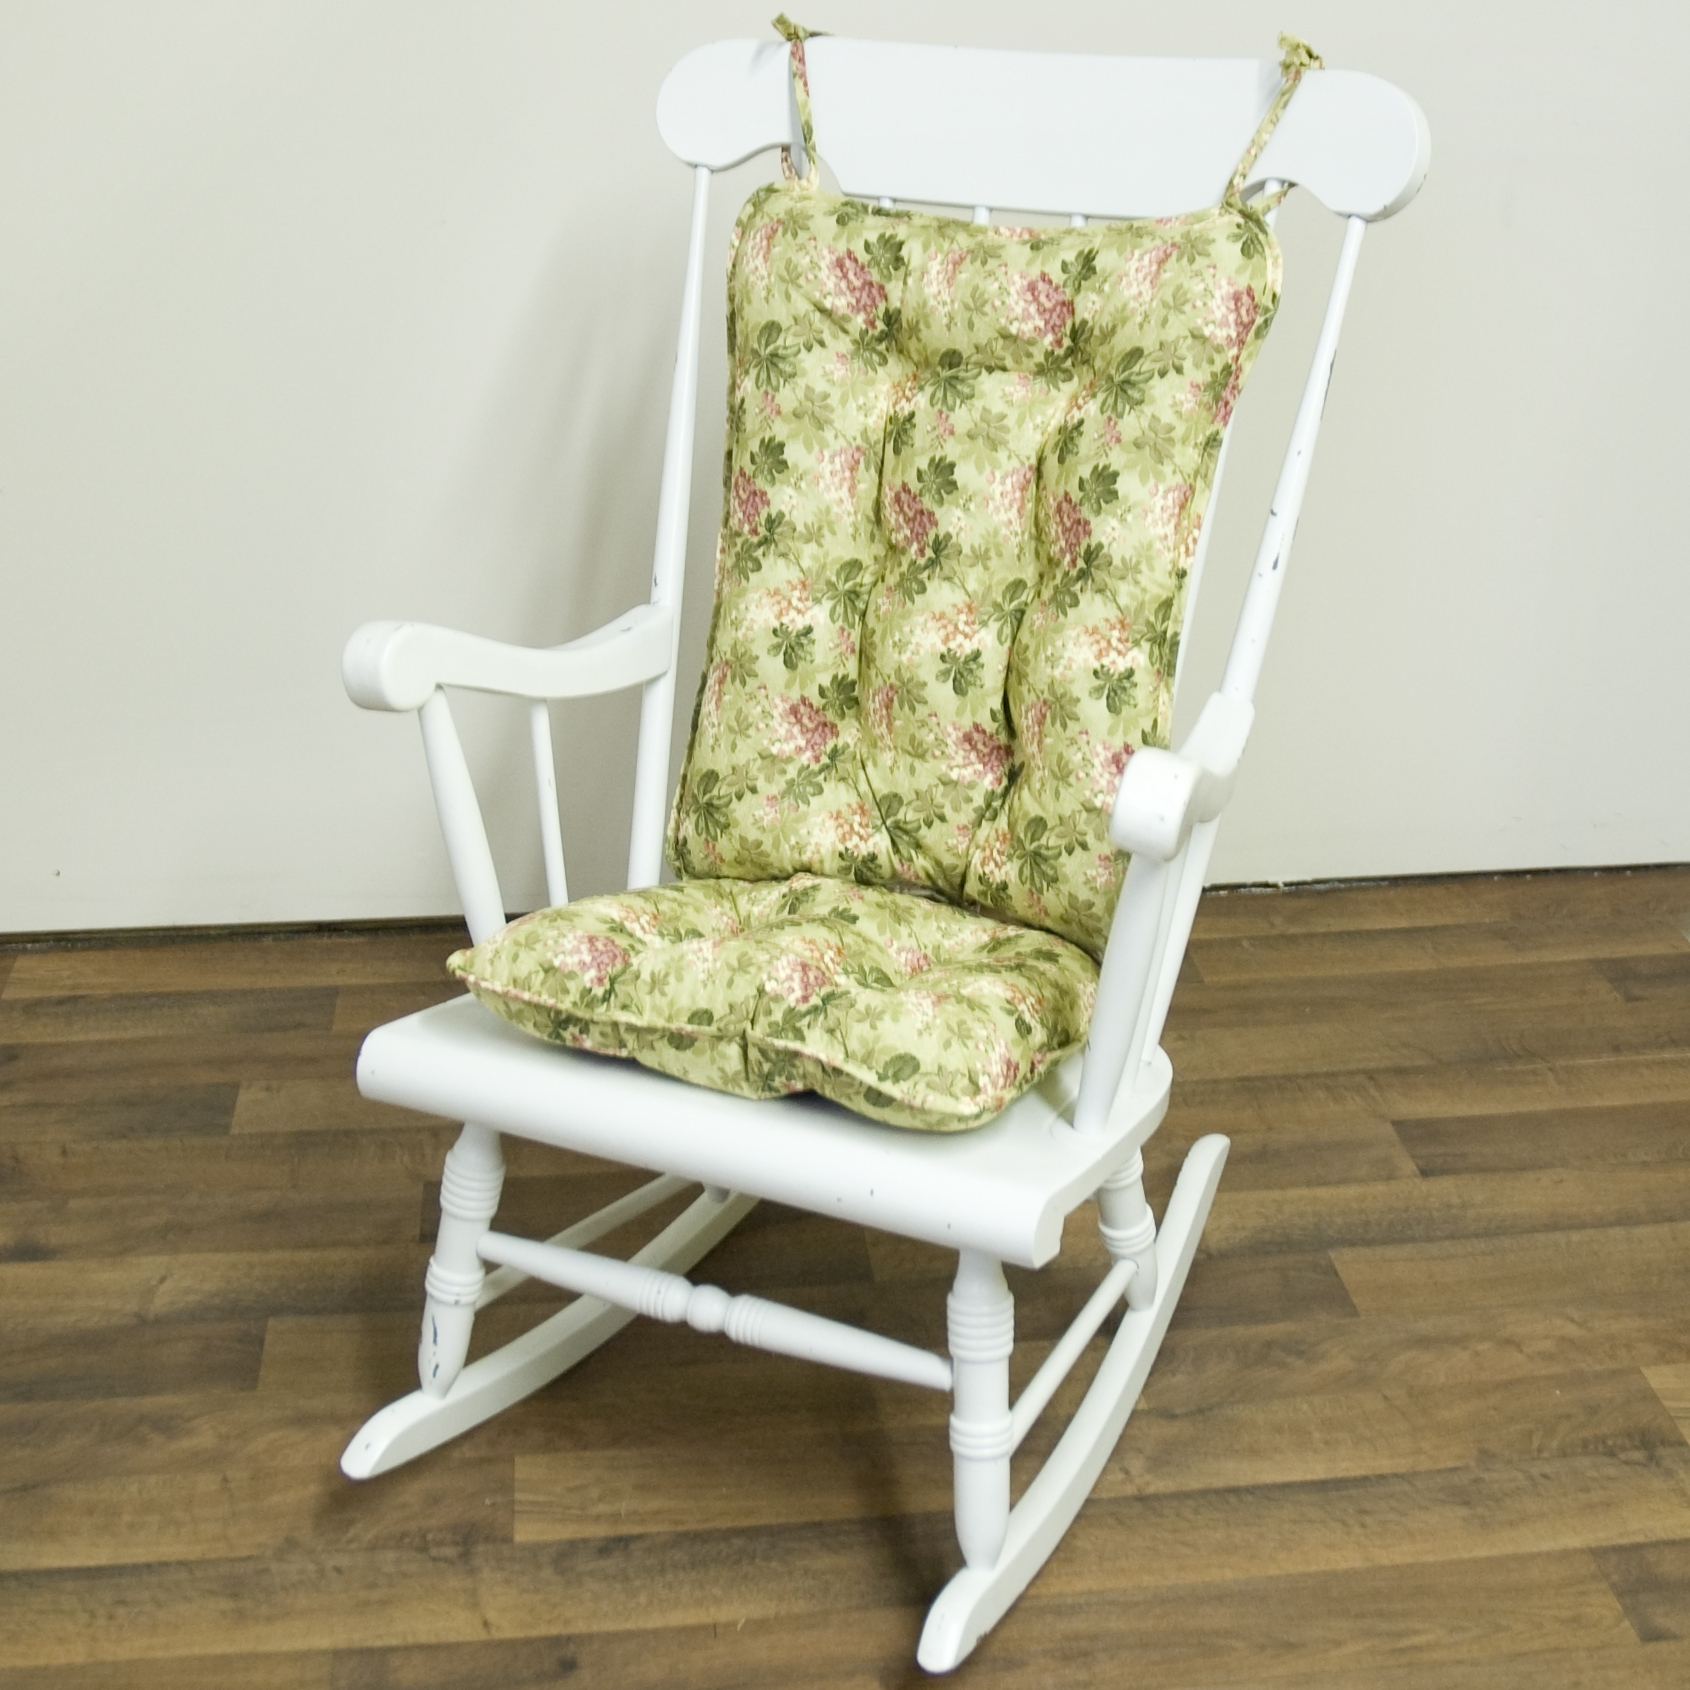 Retro Outdoor Furniture : Probably Super Nice Cushions For Rocking Regarding Retro Outdoor Rocking Chairs (#11 of 15)